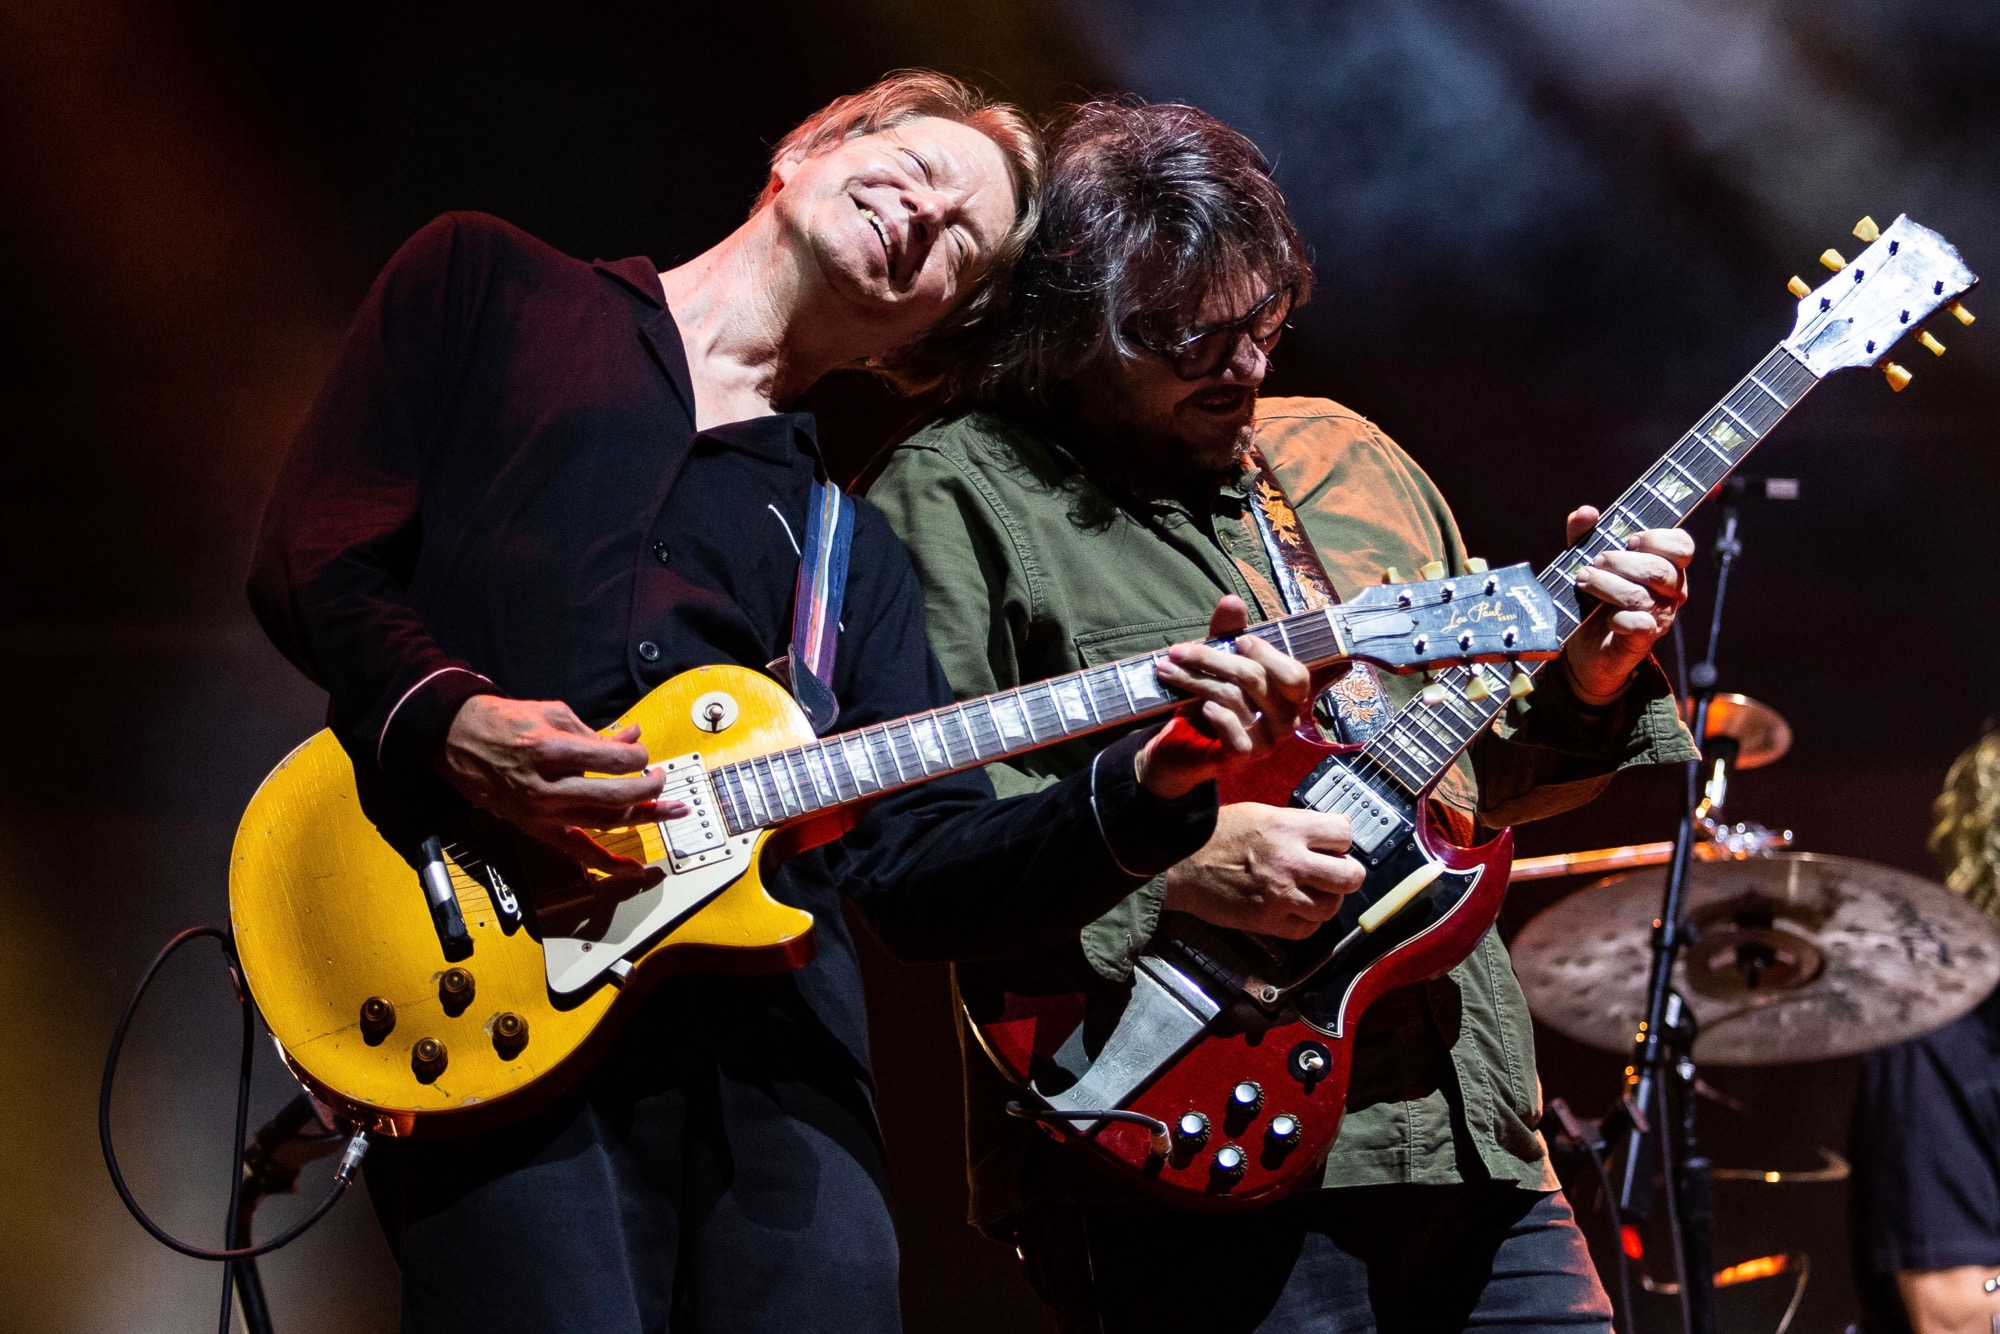 Wilco performs at Pritzker Pavilion in Chicago on Aug. 28, 2021.